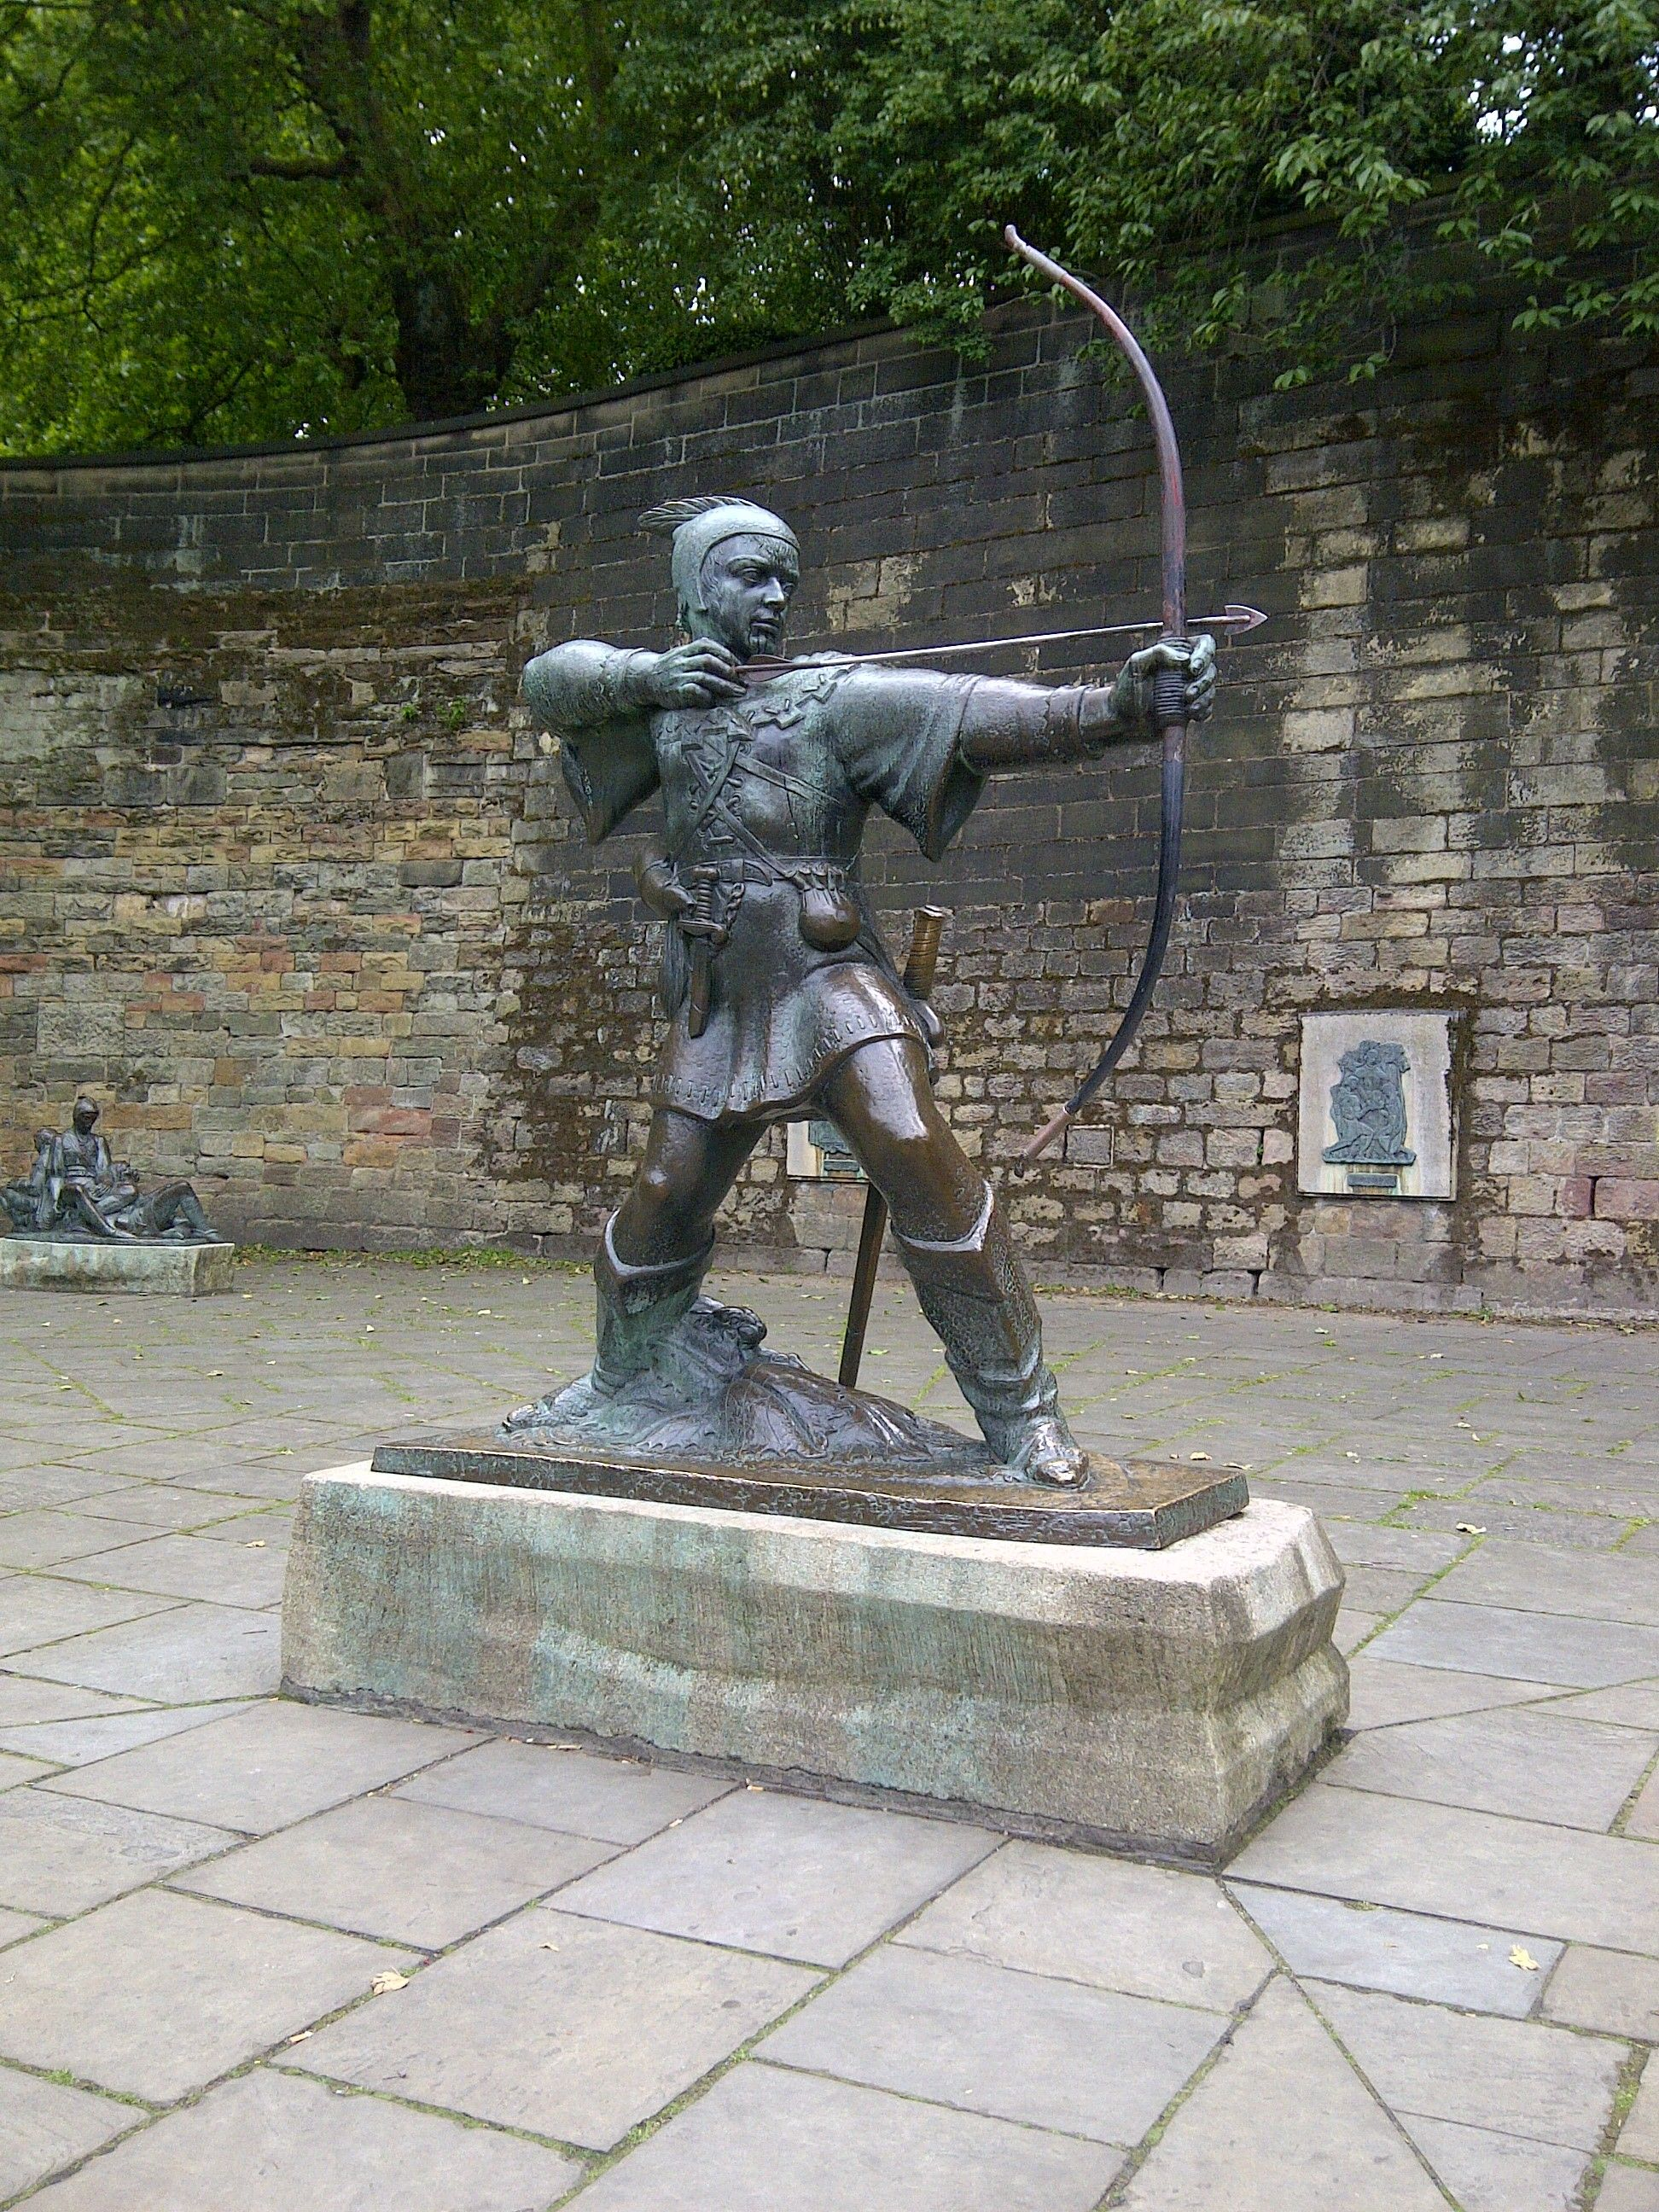 Robin Hood Statue in Nottingham, UK | Robin of the Hood | Nottingham